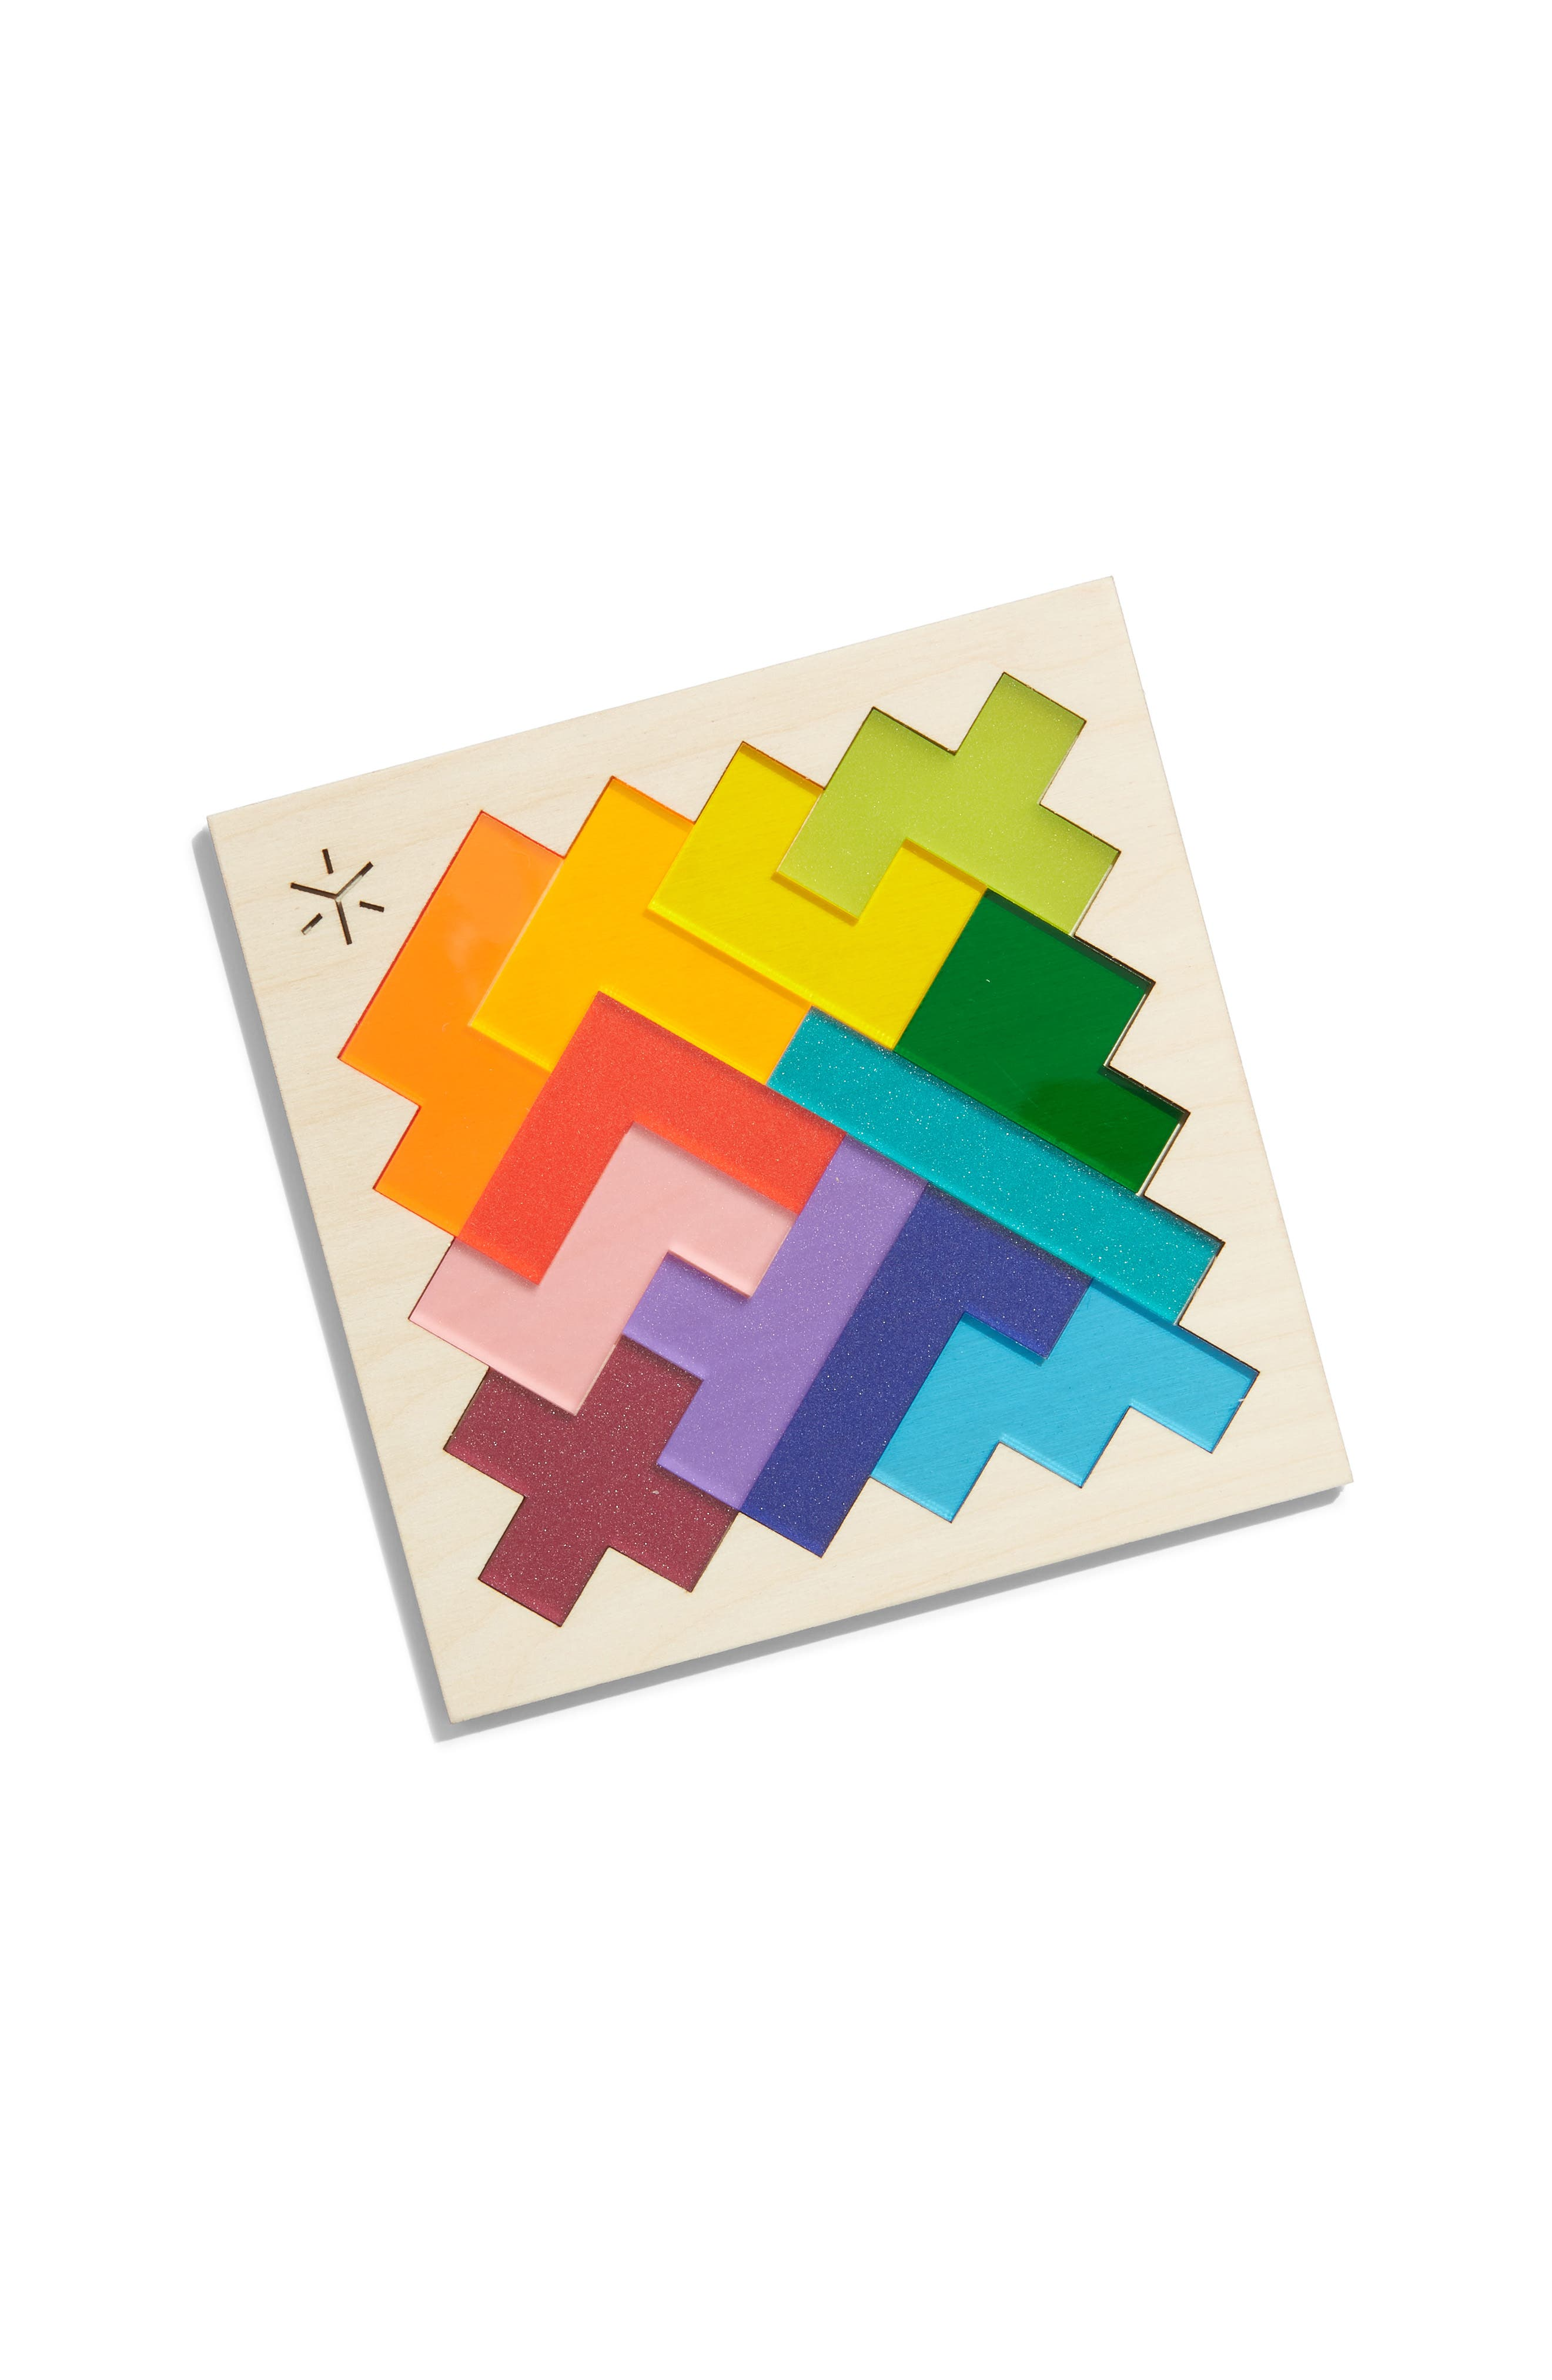 Square Pentomino Puzzle,                             Main thumbnail 1, color,                             RAINBOW